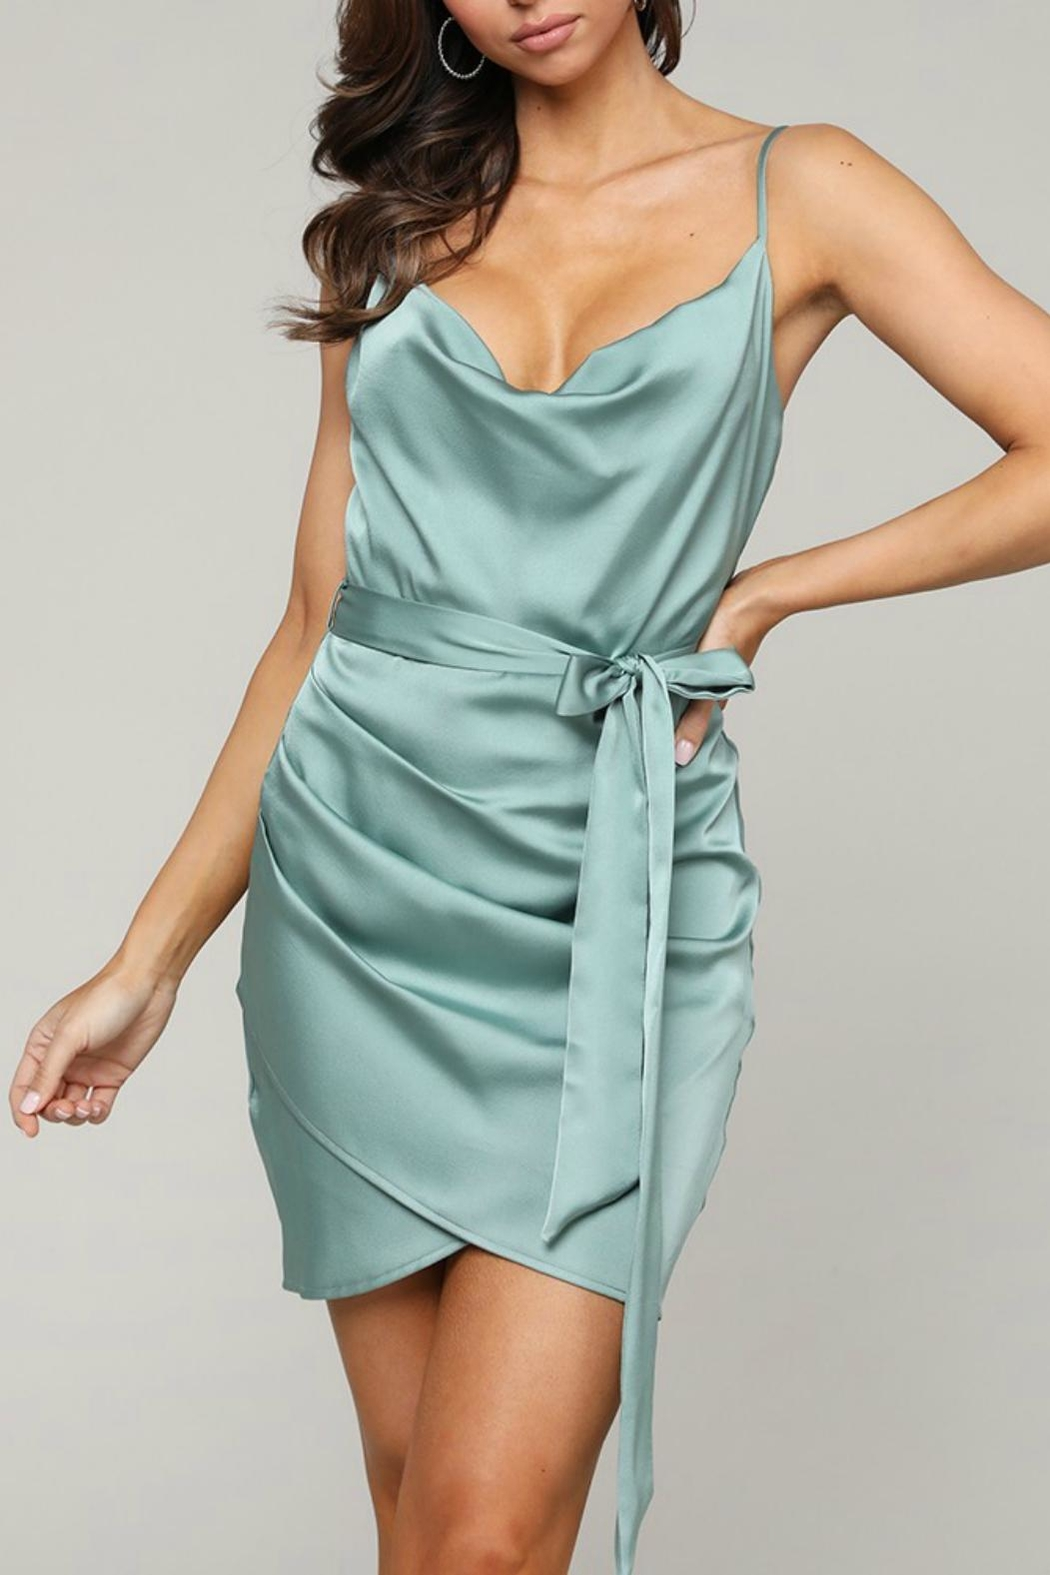 Pretty Little Things Satin Wrap Dress - Main Image